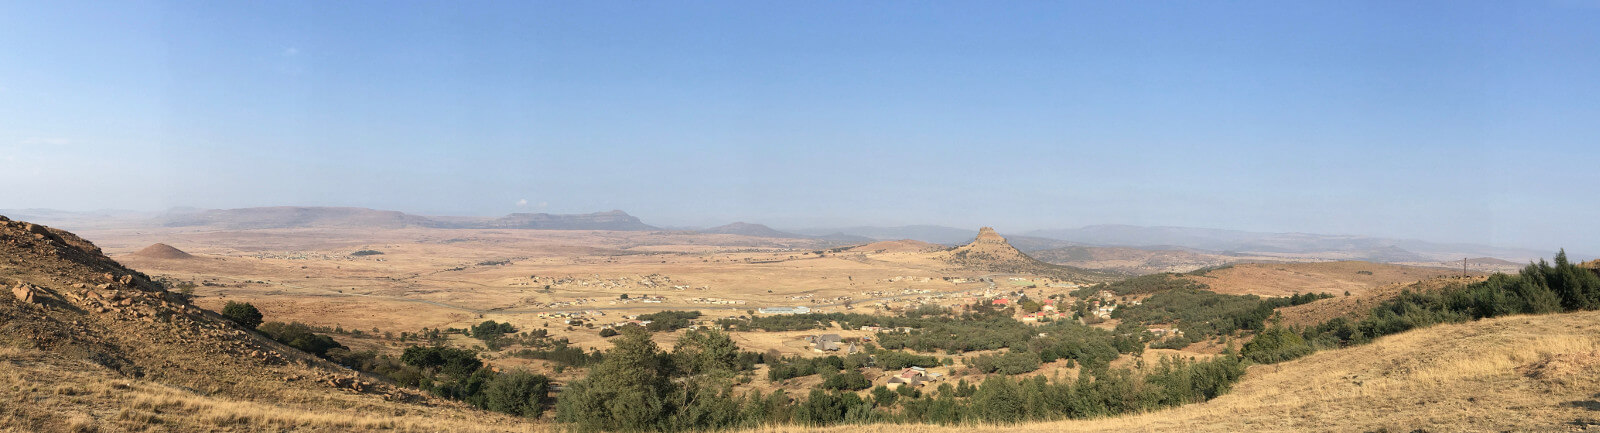 The Isandhlwana battleground as seen by the Zulu high command on Inyoni Hill